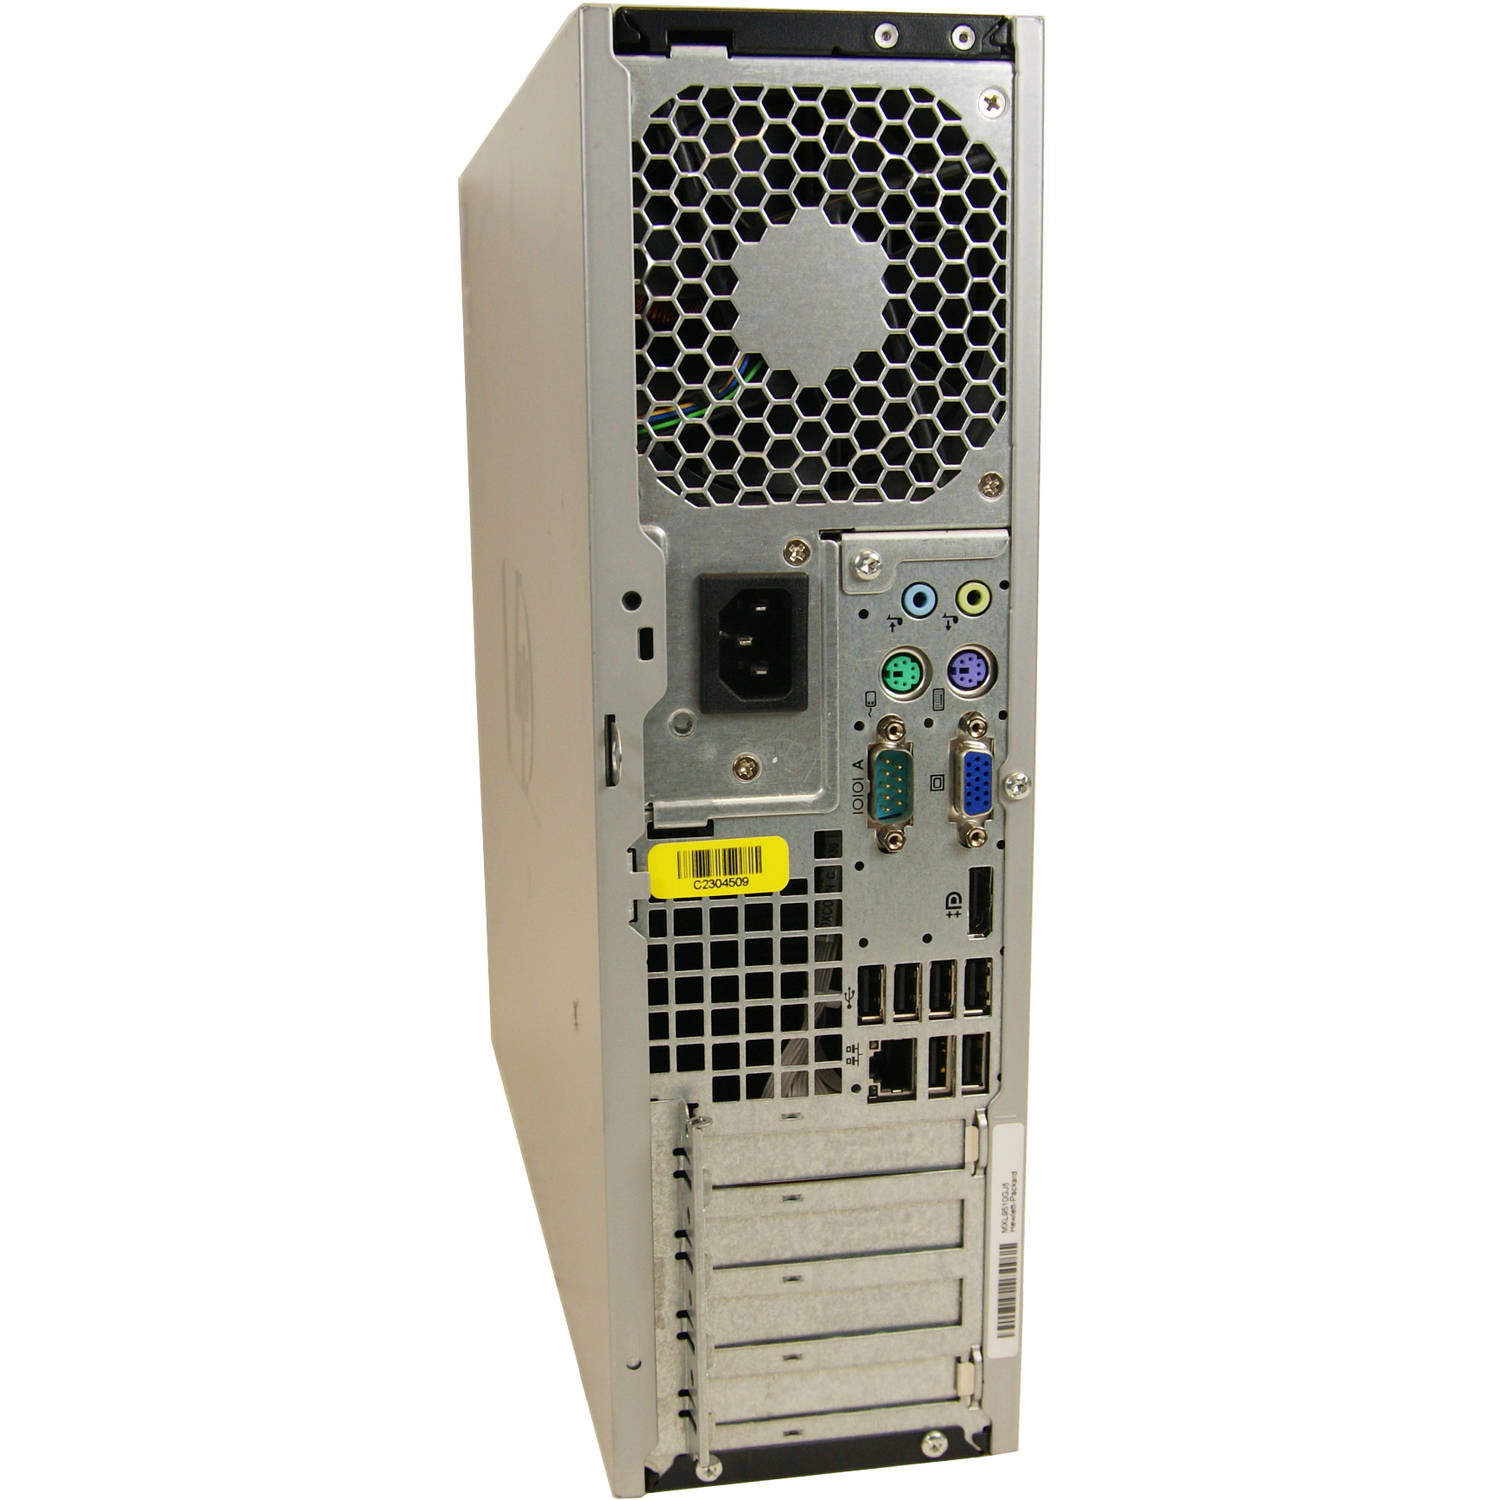 Refurbished Hp Dc7900 Small Form Factor Desktop Pc With Intel Core 2 Duo Processor 4gb Memory 750gb Hard Drive And Windows 10 Pro Monitor Not Included